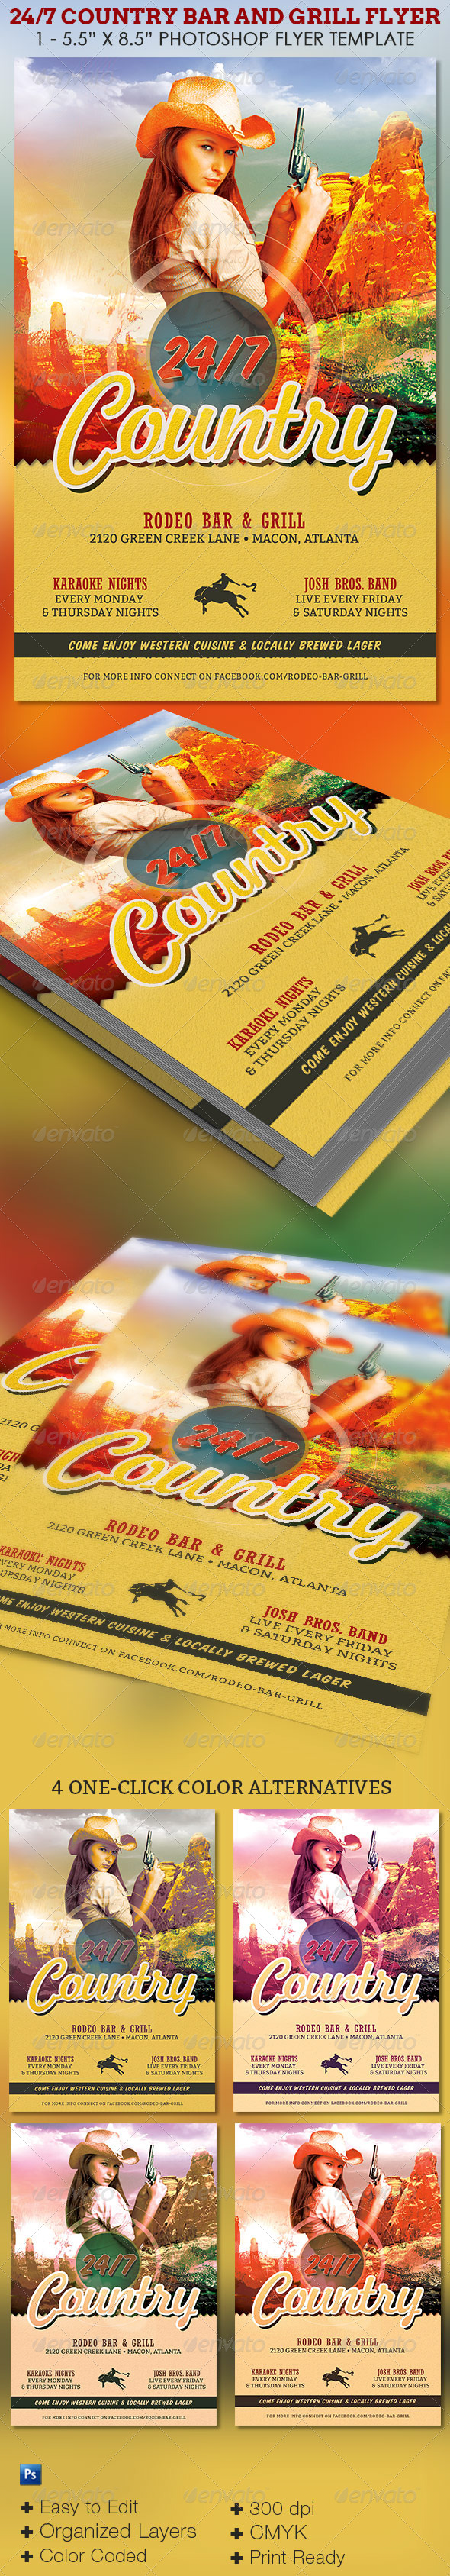 GraphicRiver 24 7 Country Bar and Grill Flyer Template 7708583